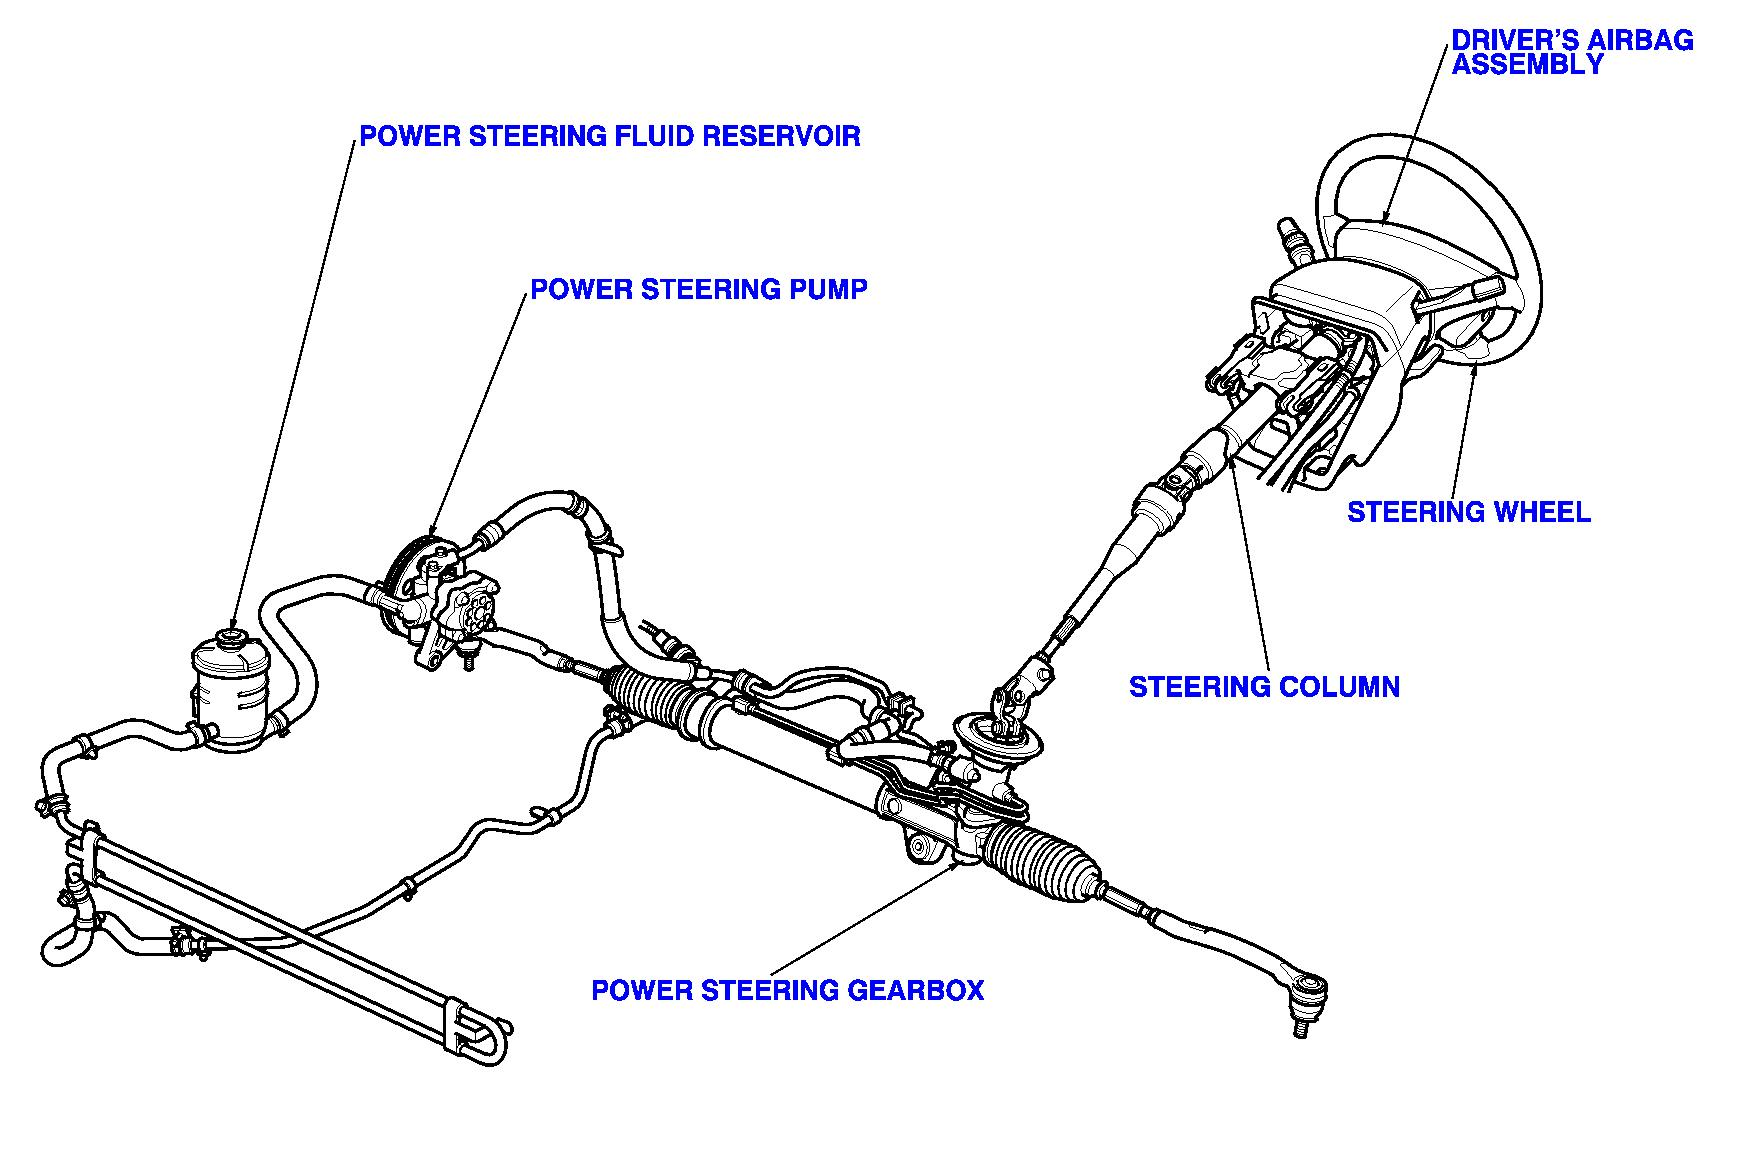 Power Steering Diagram Experts Of Wiring Toyota Diagrams Using The Electrical Caroldoey Fluid Service And Replacement In Cockeysville Maryland Rh Padoniaautoservice Com 1864